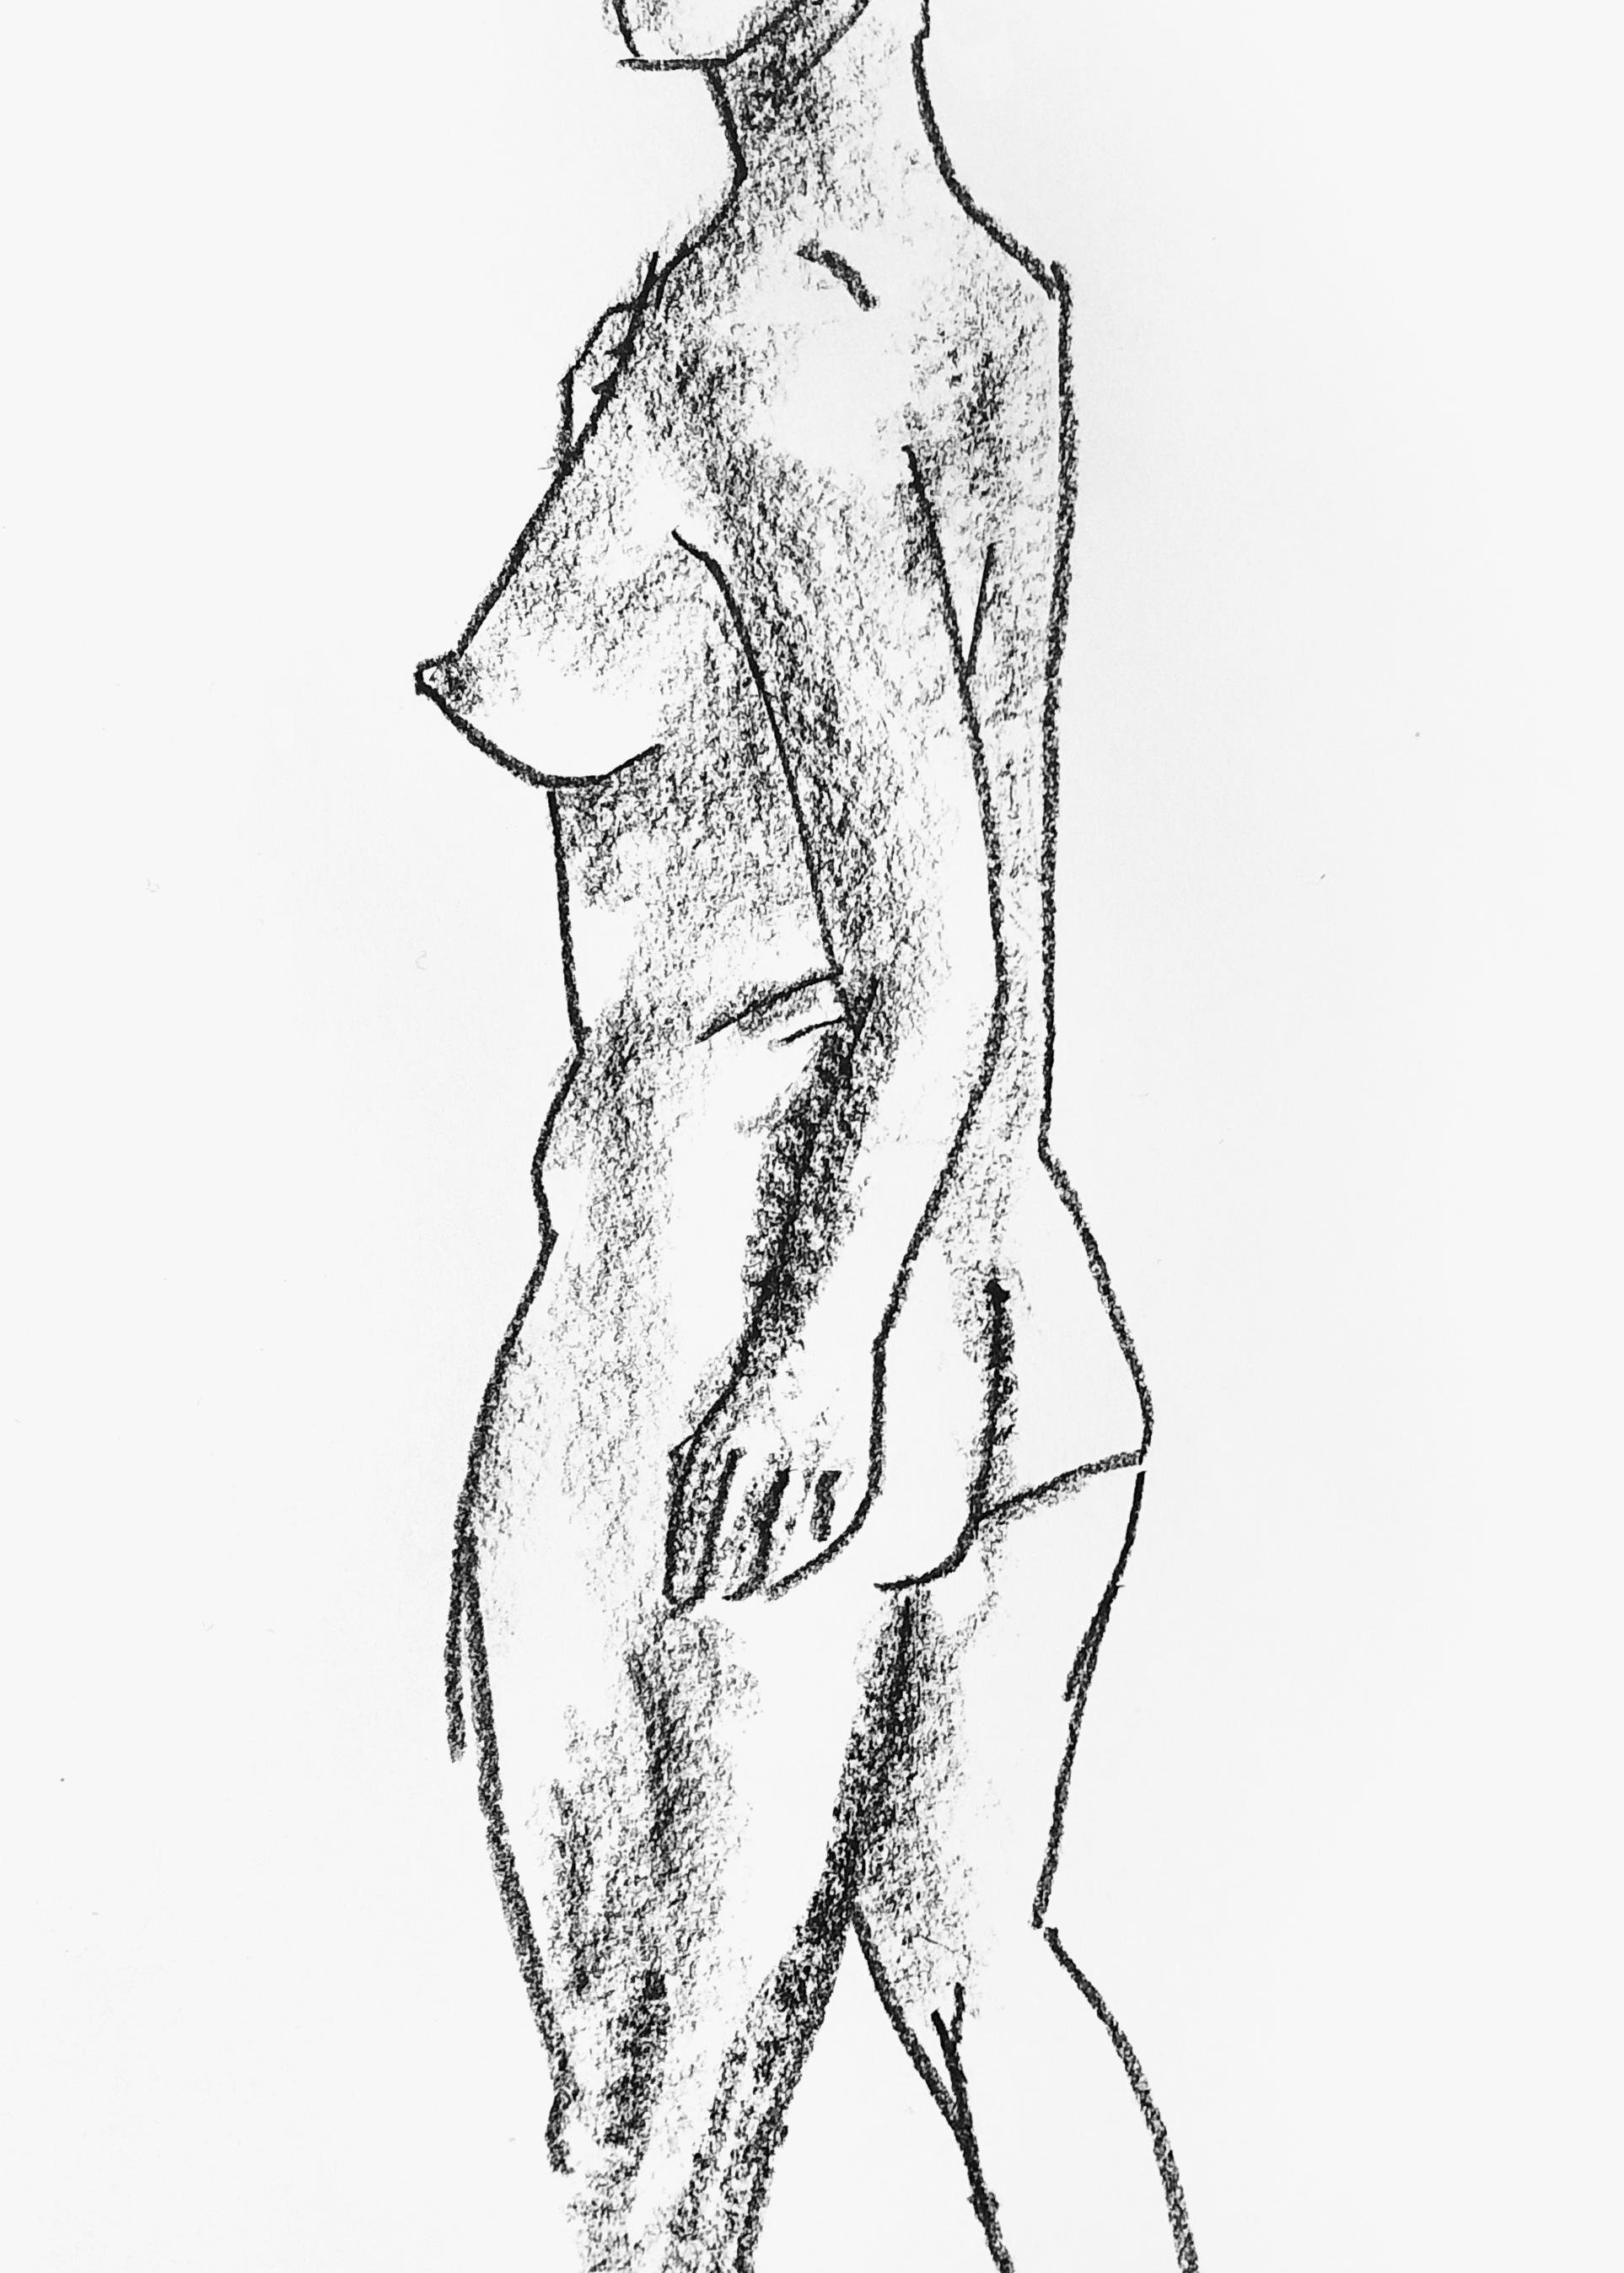 10 minute life drawing in conté crayon